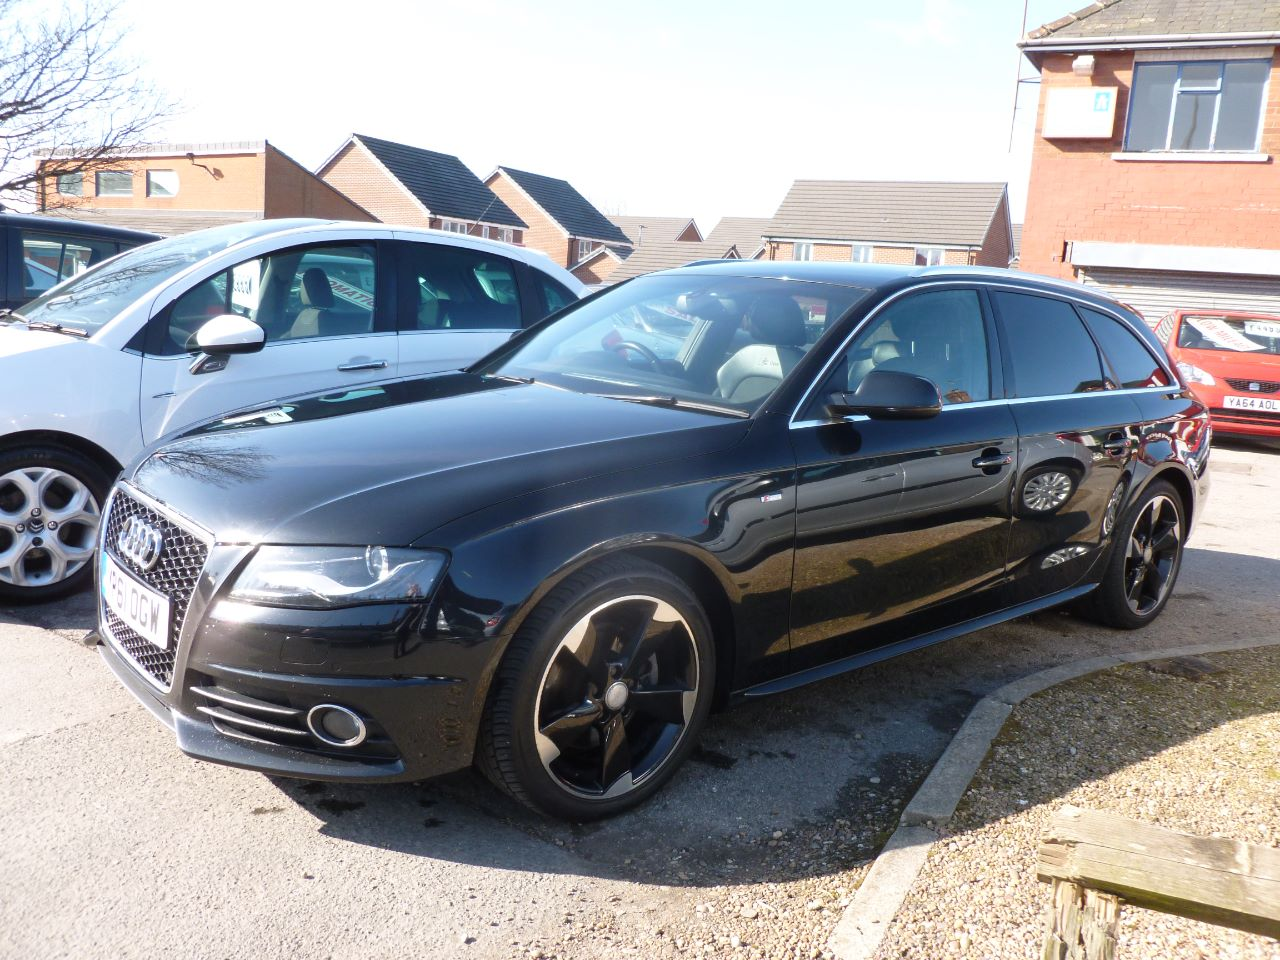 Audi A4 2.0 TDI 136 S Line 5dr [Start Stop] Estate Diesel Black